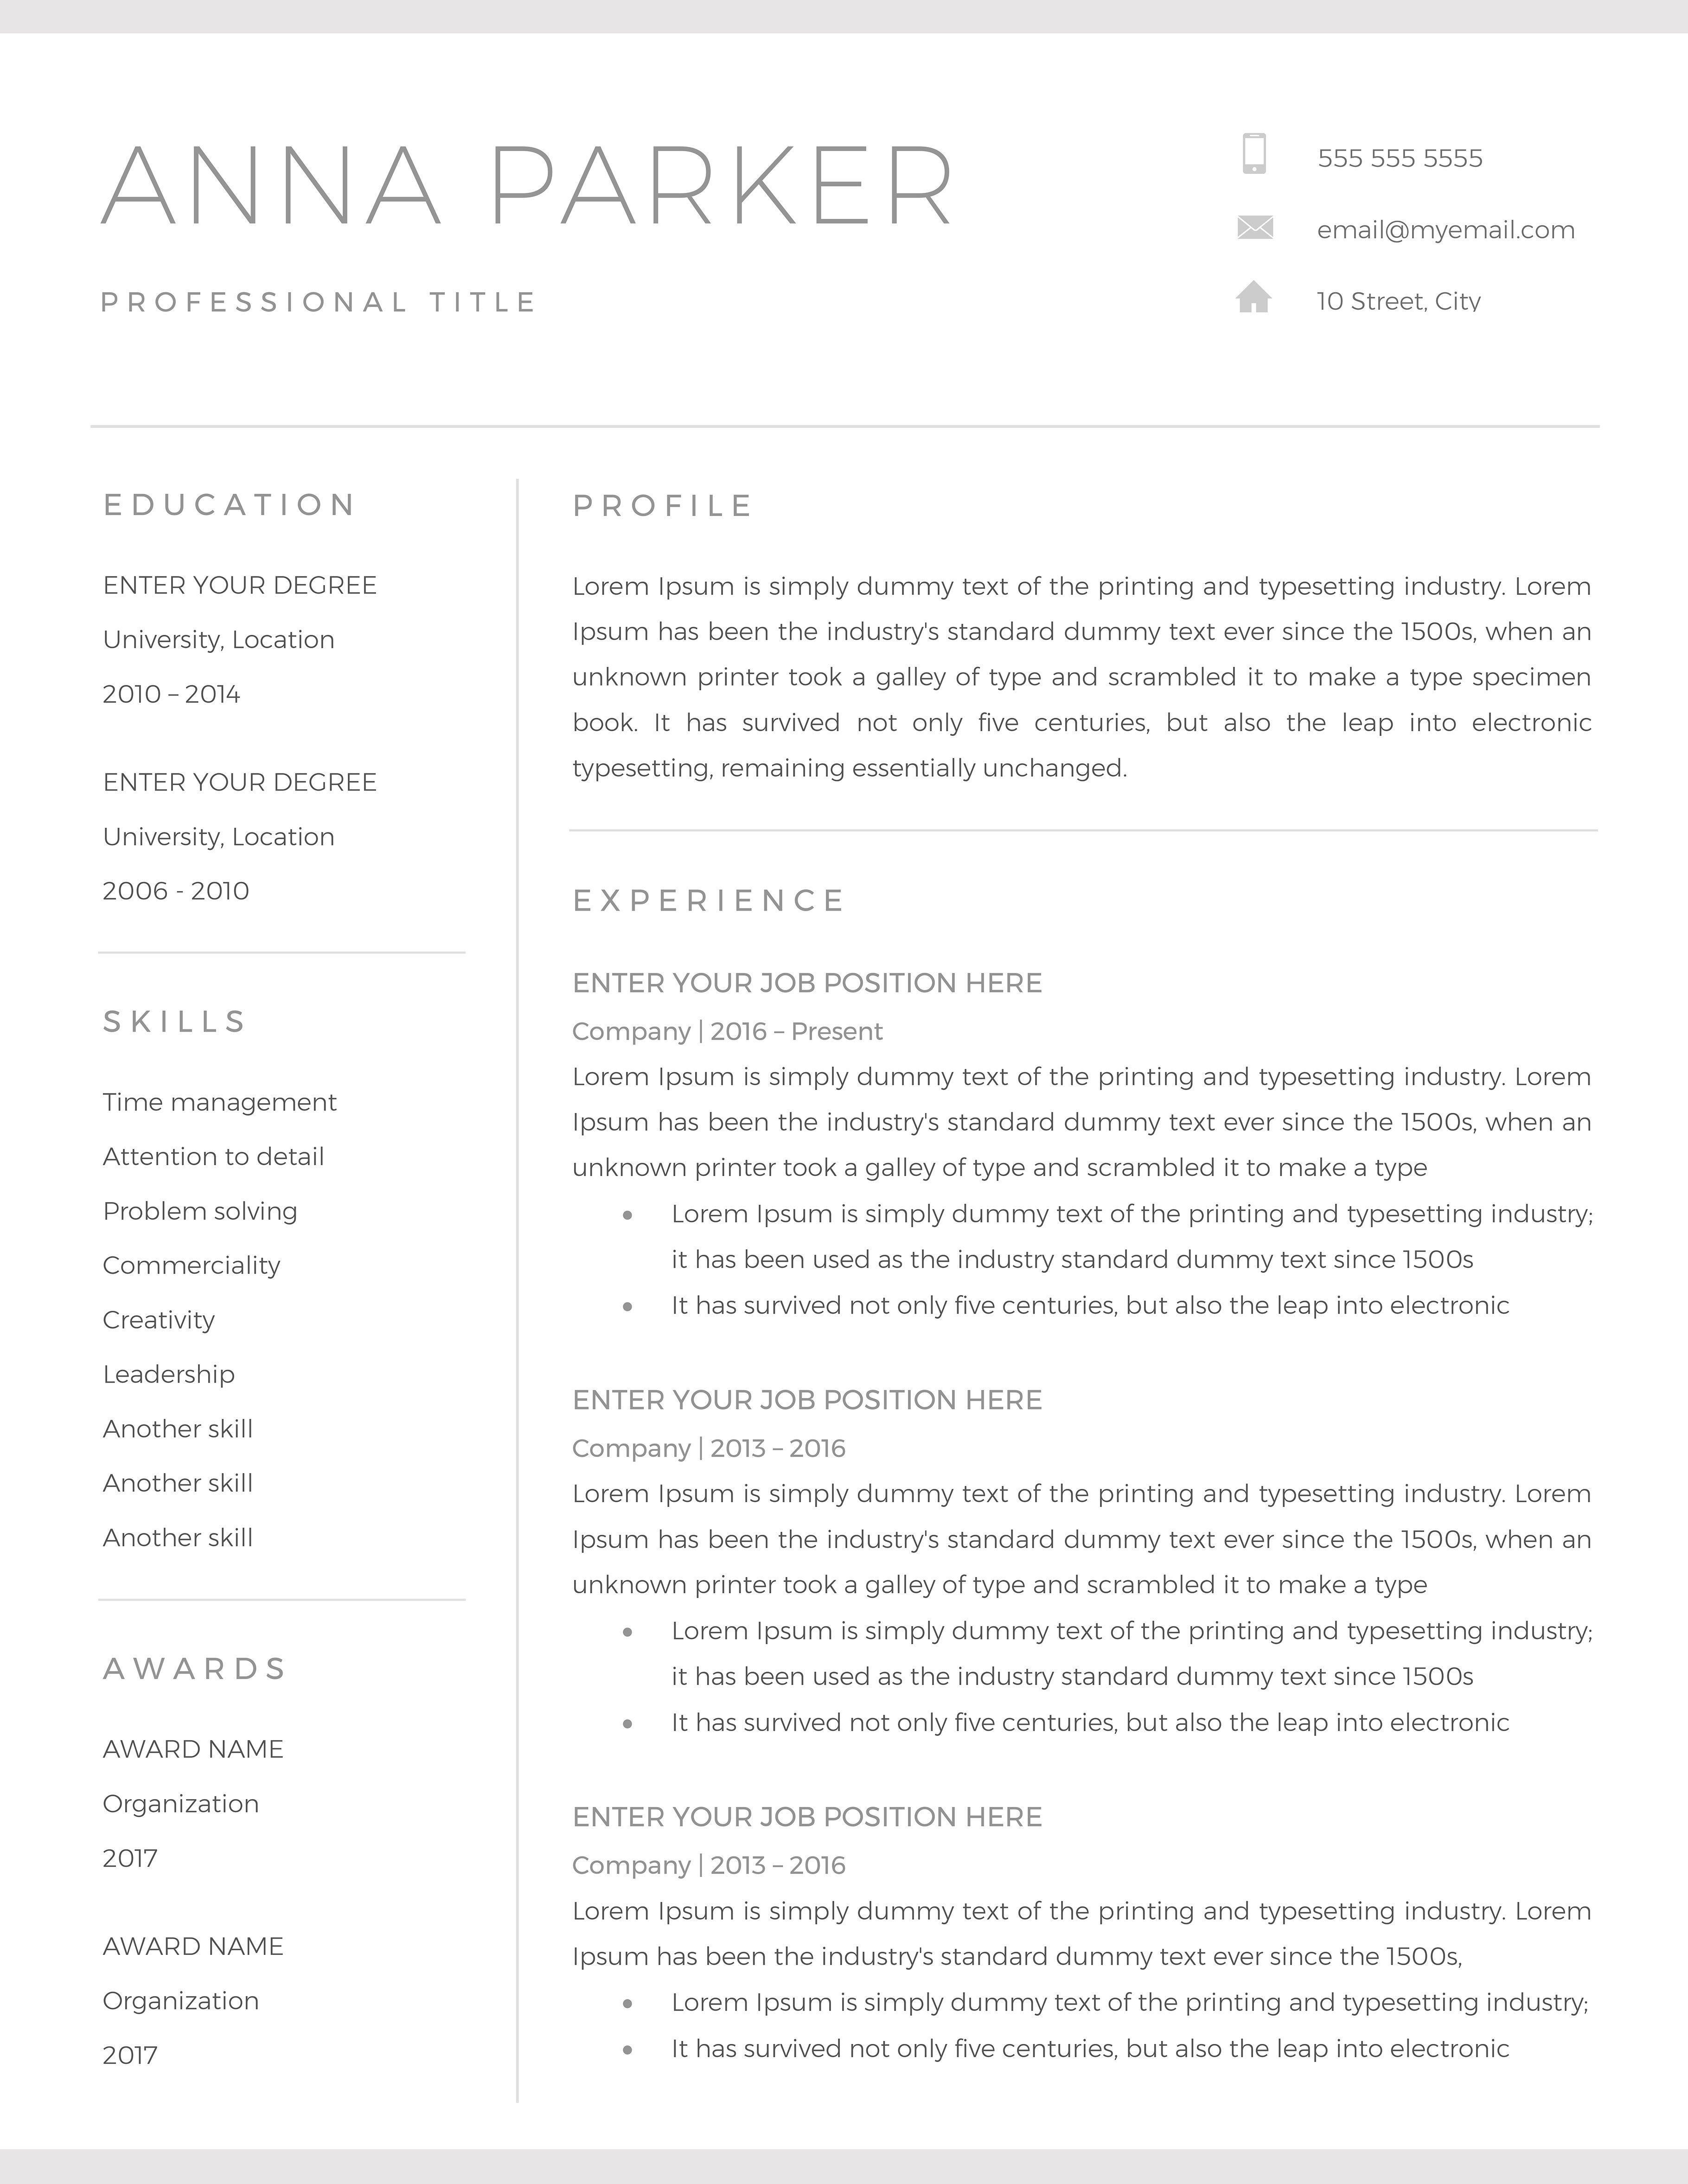 Resume Template / CV Preparing a resume should never be a